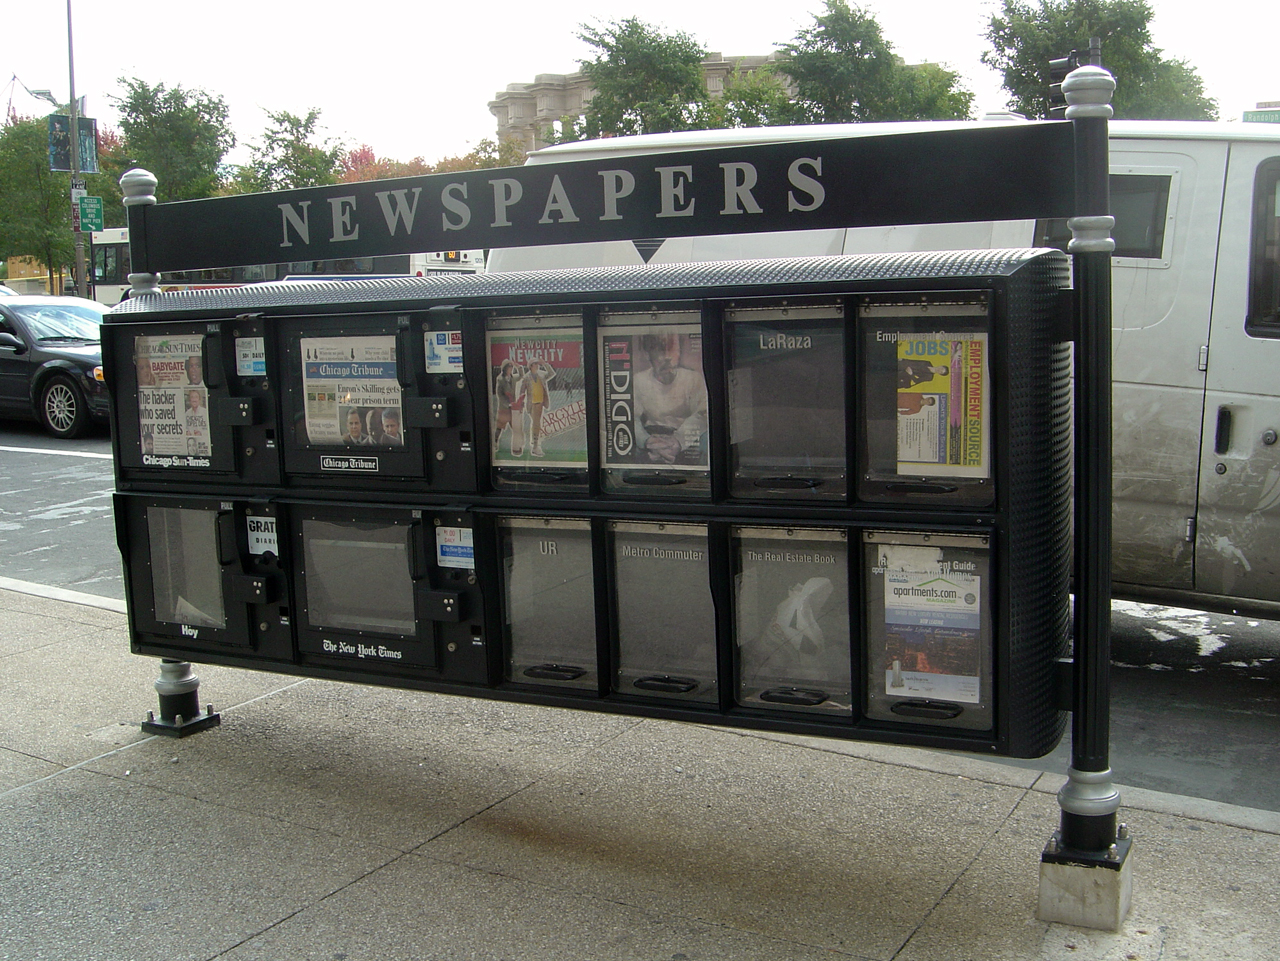 Image of a newspaper vending machine